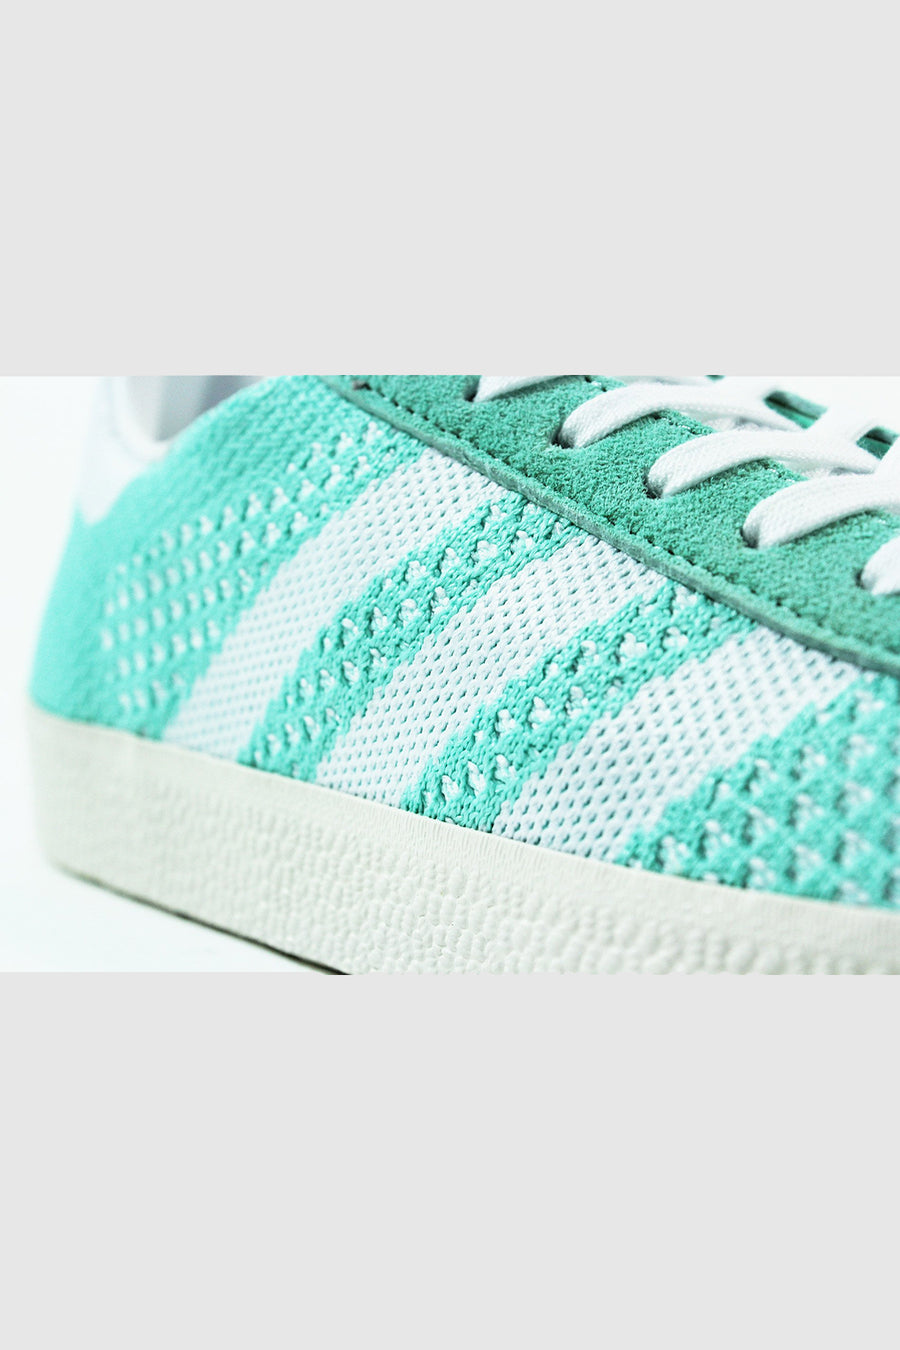 Adidas - Gazelle Primeknit Women (Easy Green/ White)